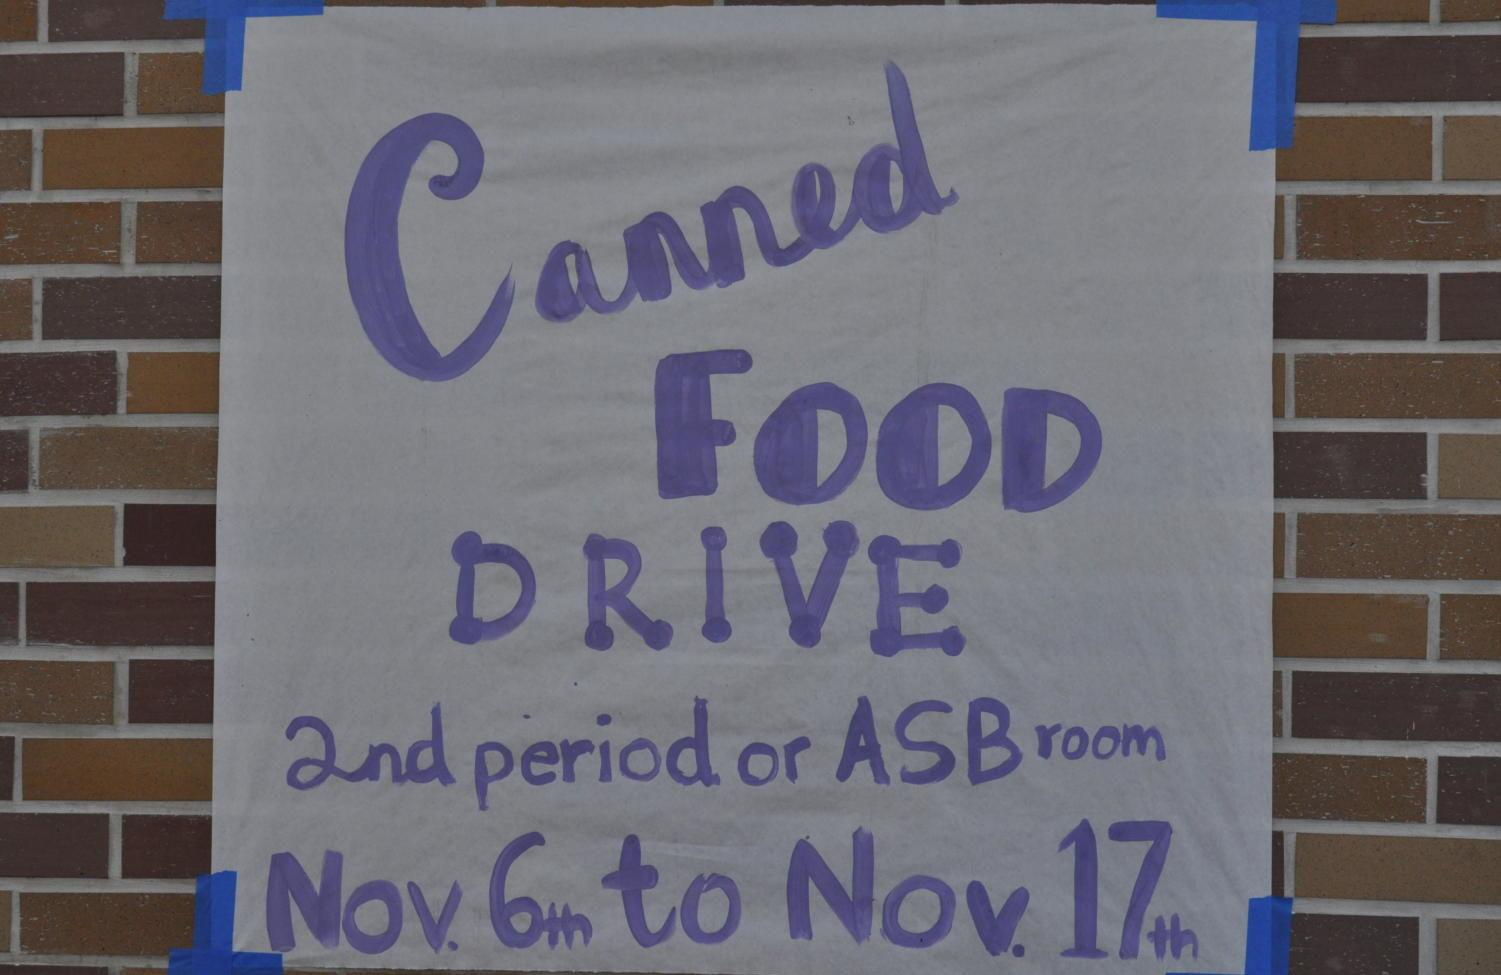 Huge+posters+announcing+the+food+drive+mark+the+walls+of+Carlmont+High+School.